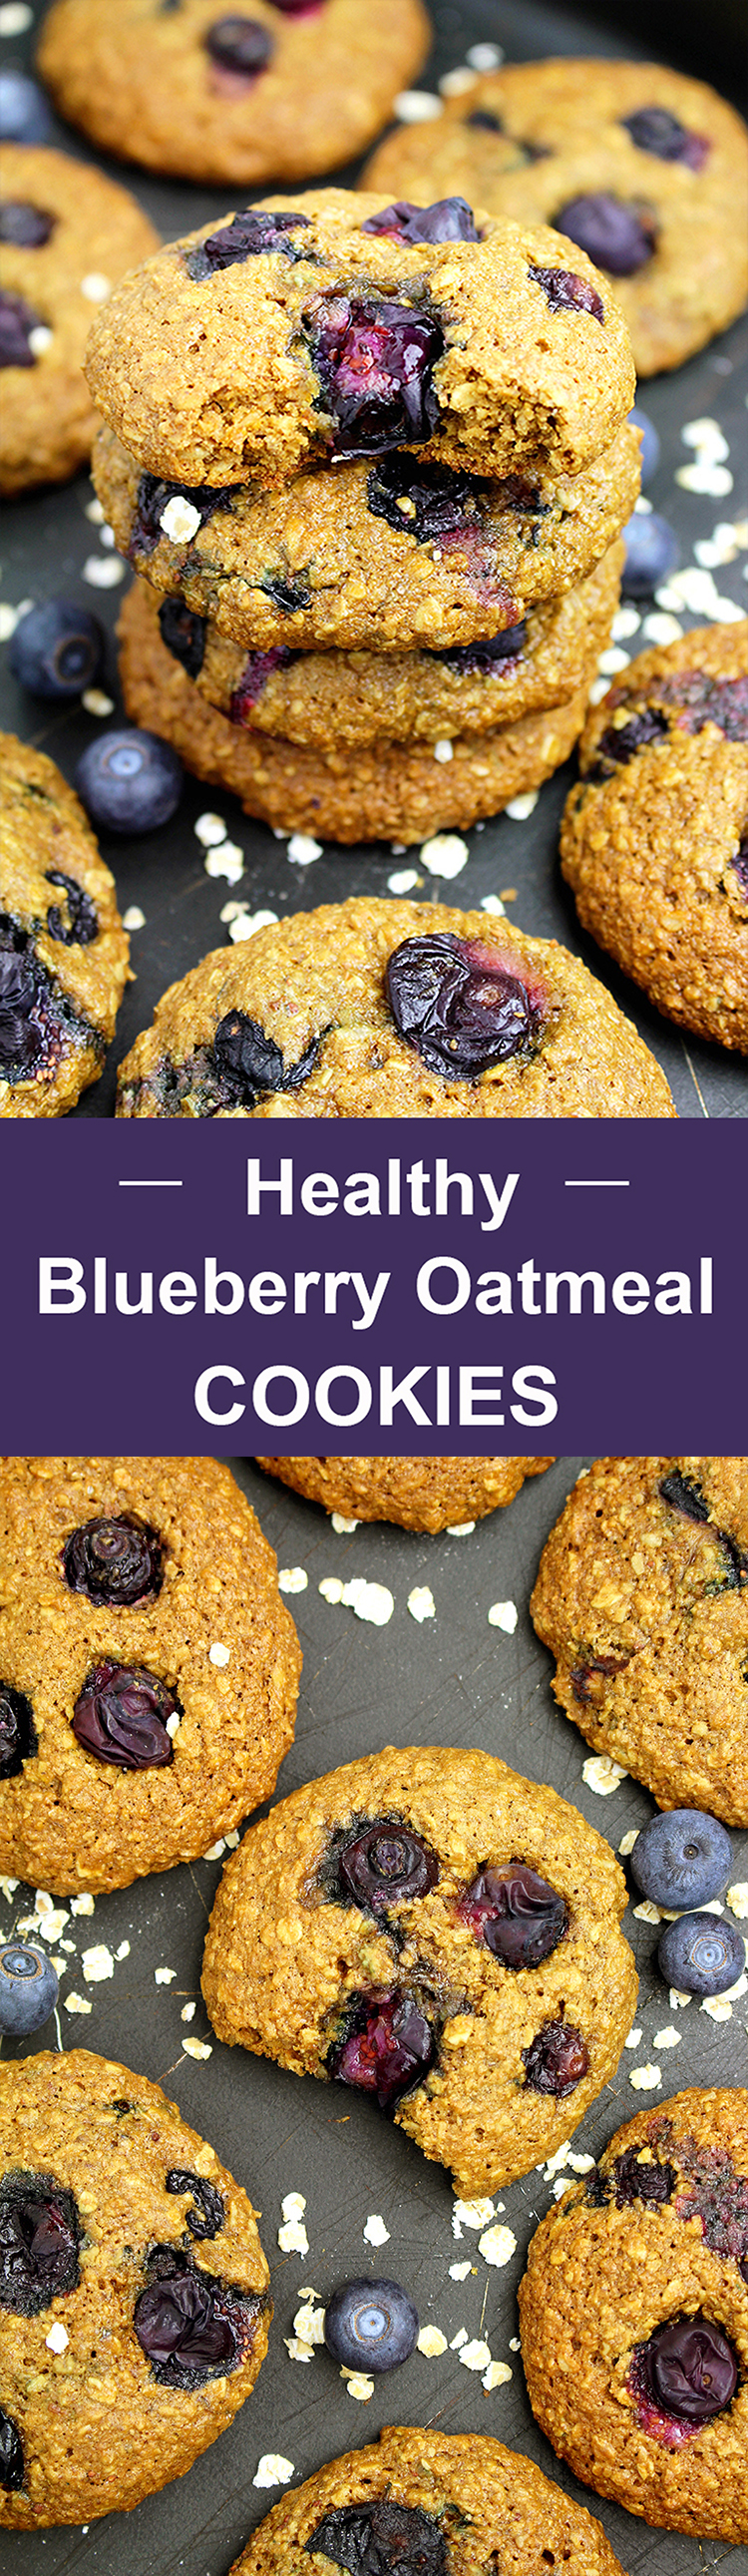 Untitled-1111 Healthy Blueberry Oatmeal Cookies